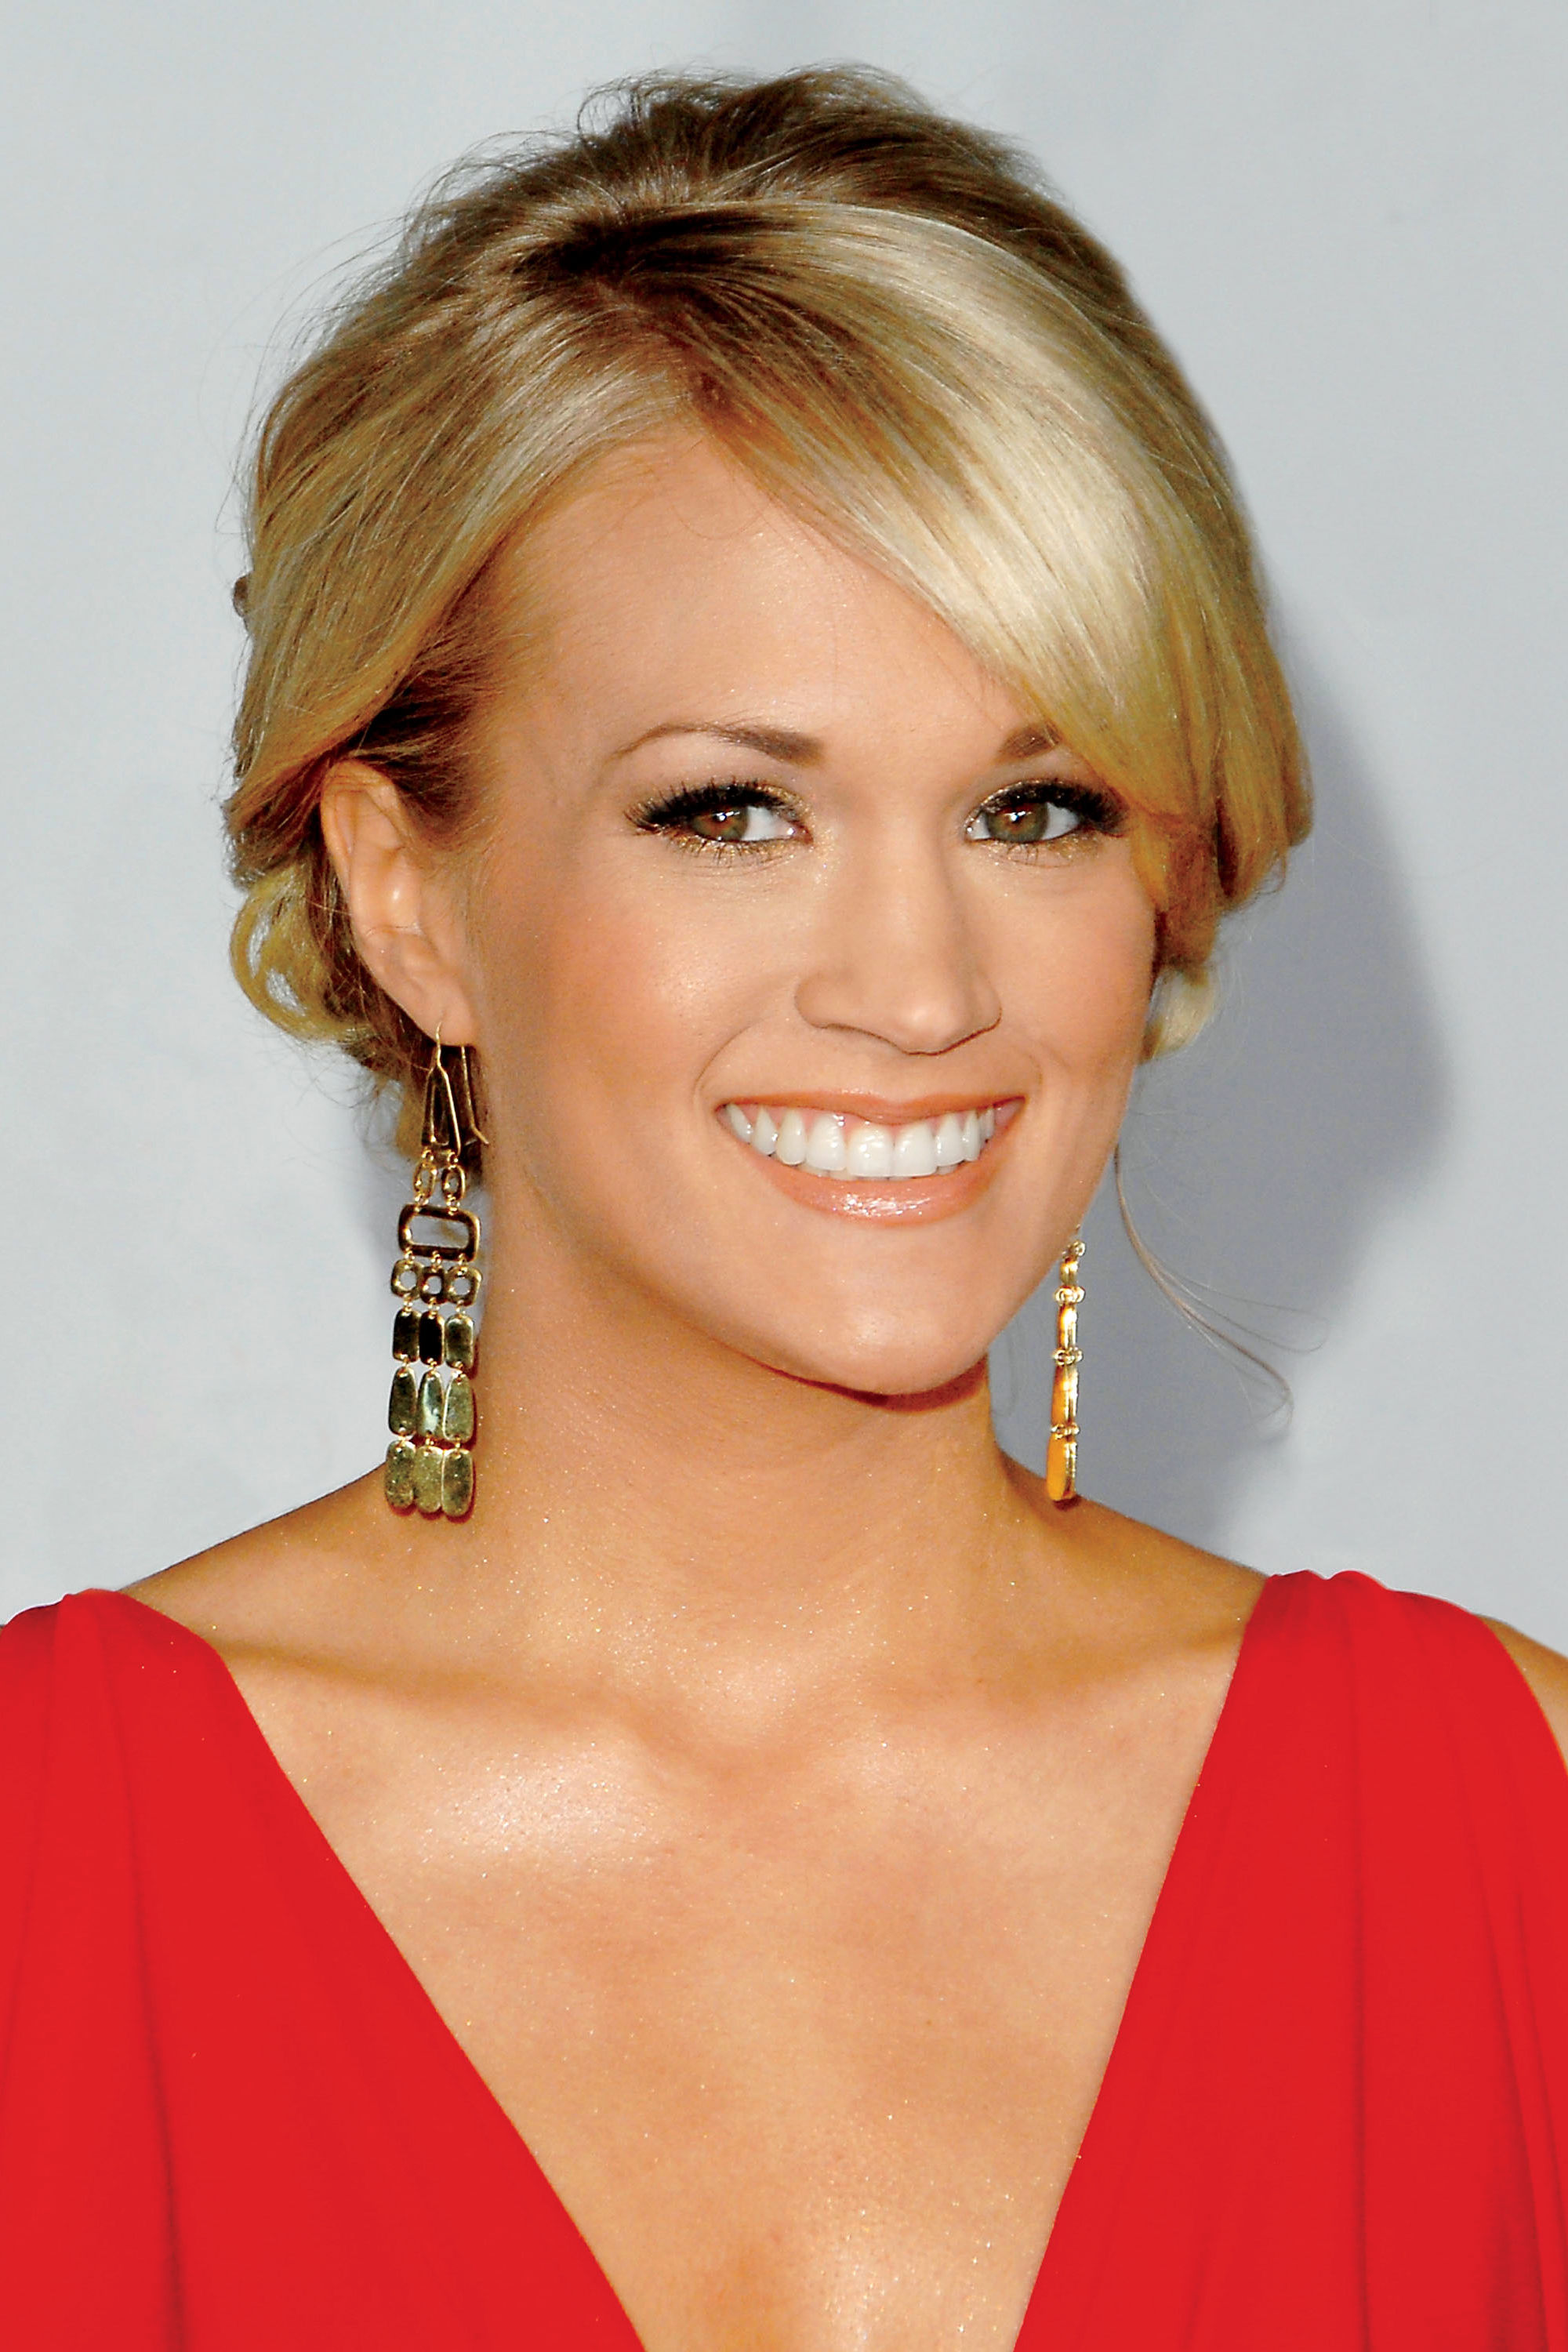 Carrie Underwood's Holiday Plans Include a Lot of Traveling and a Little Decorating: 'You Have to Have a Tree!'